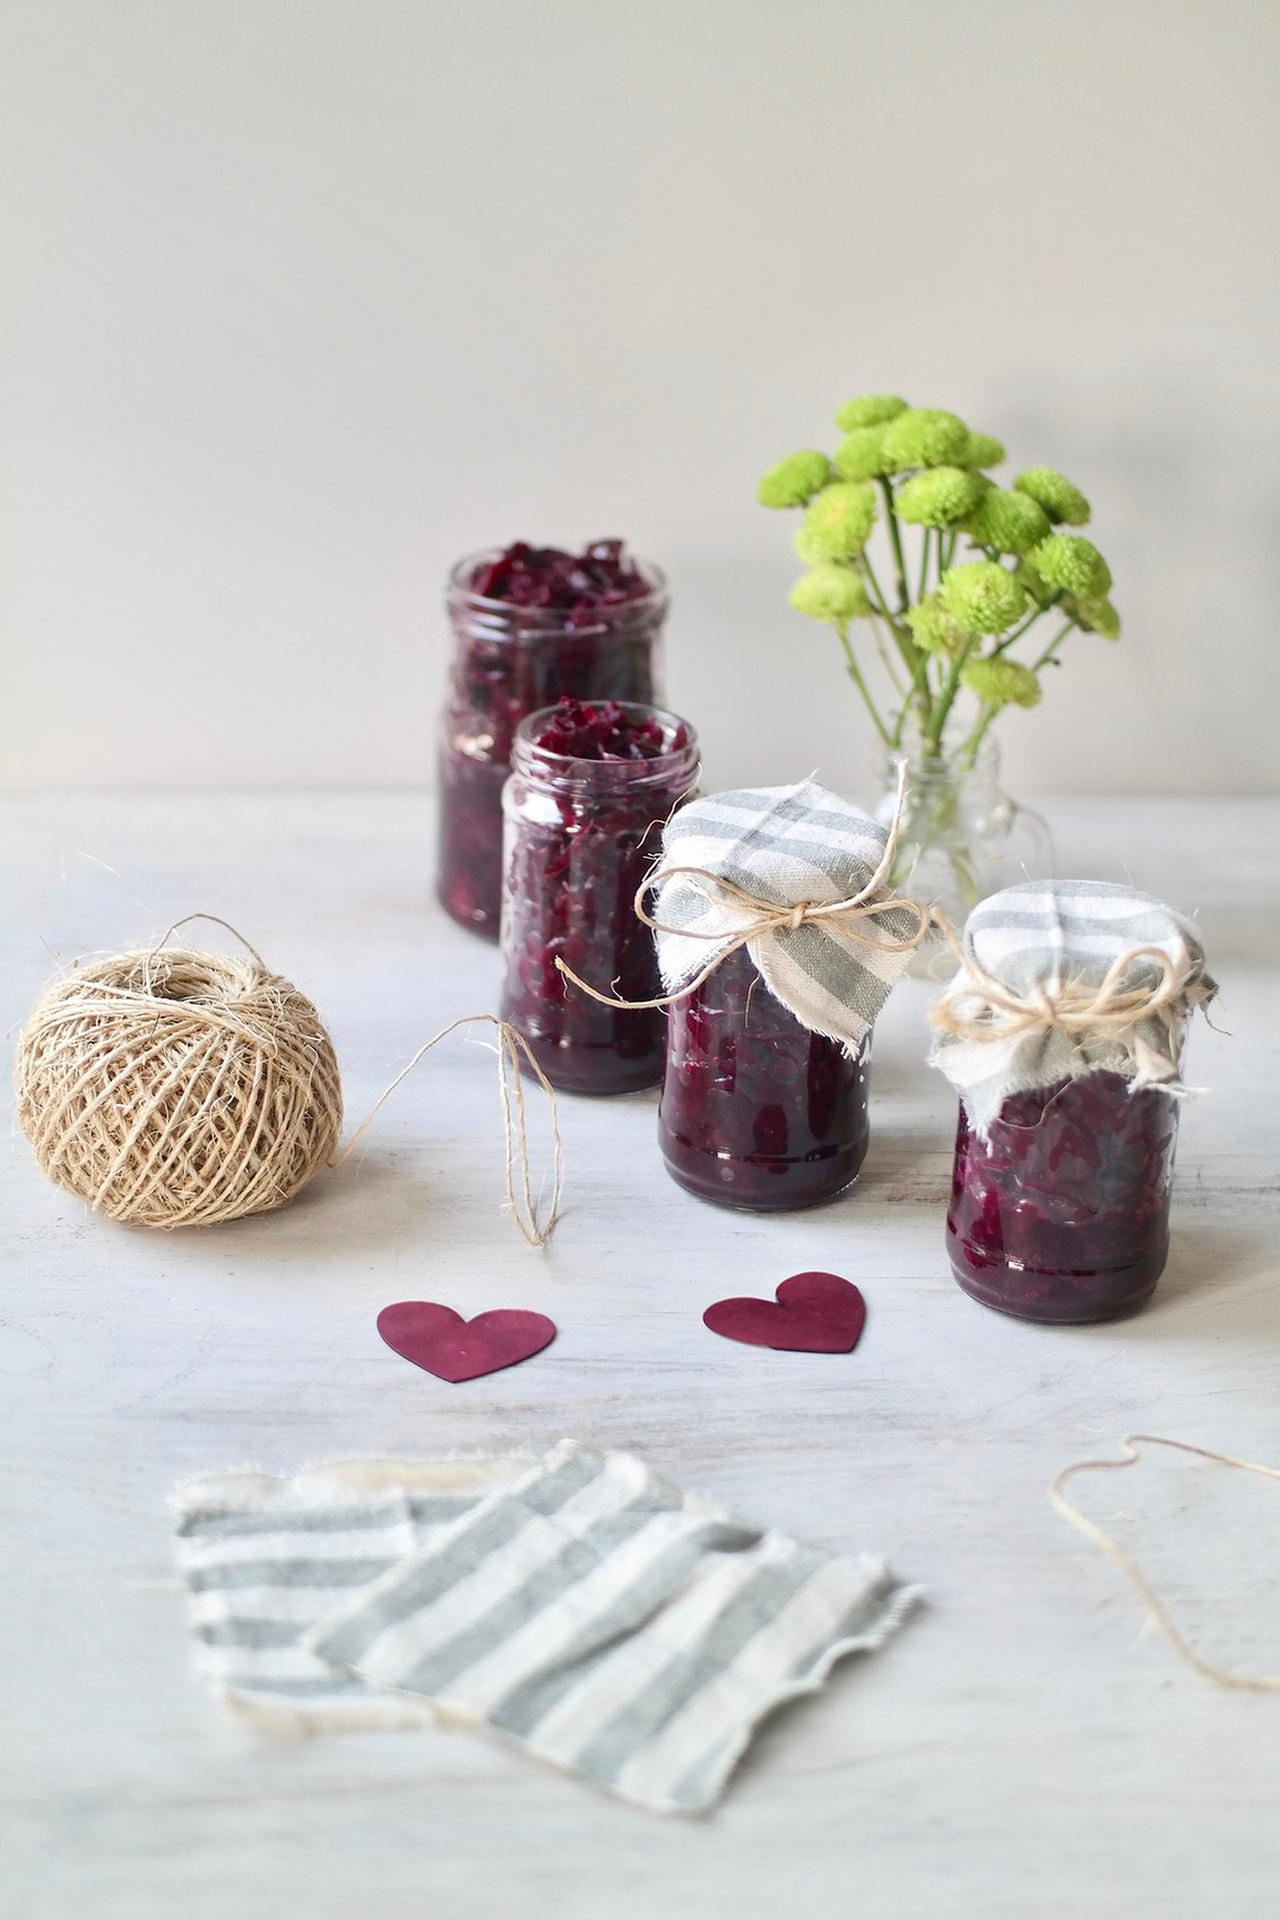 Main image of Beetroot & Red Cabbage Sauerkraut